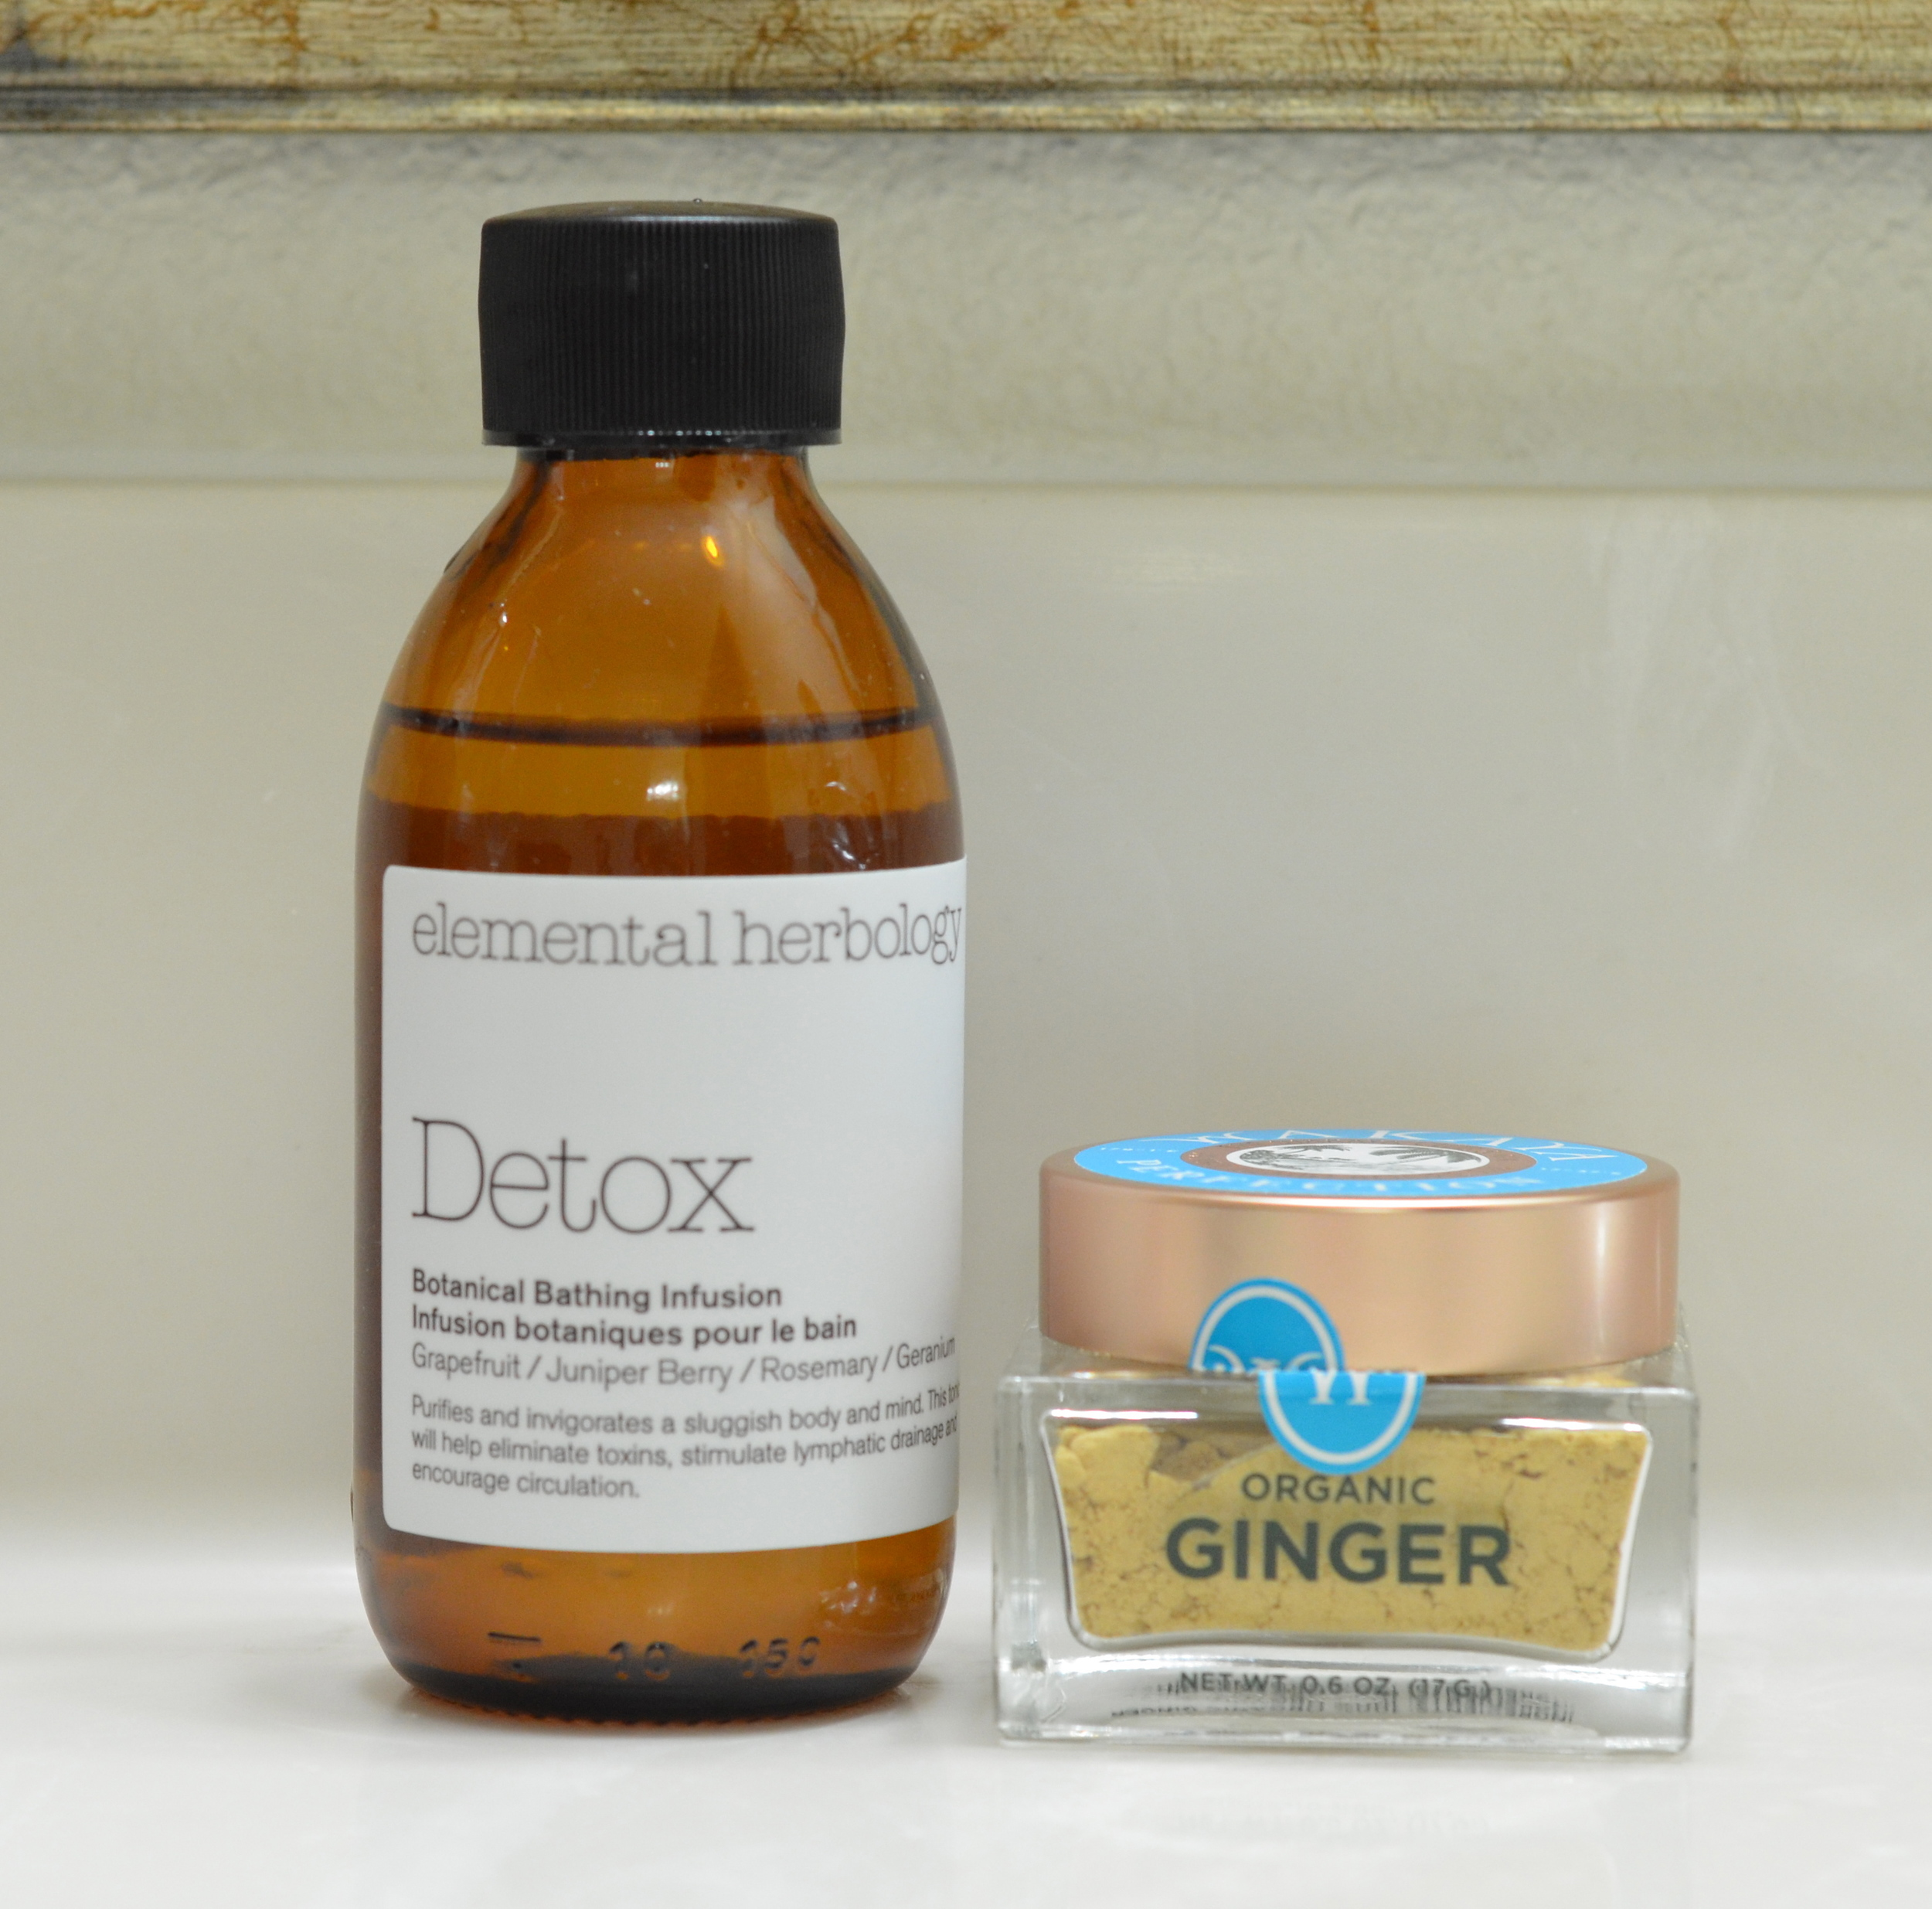 elemental herbology detox review, wakaya ginger review